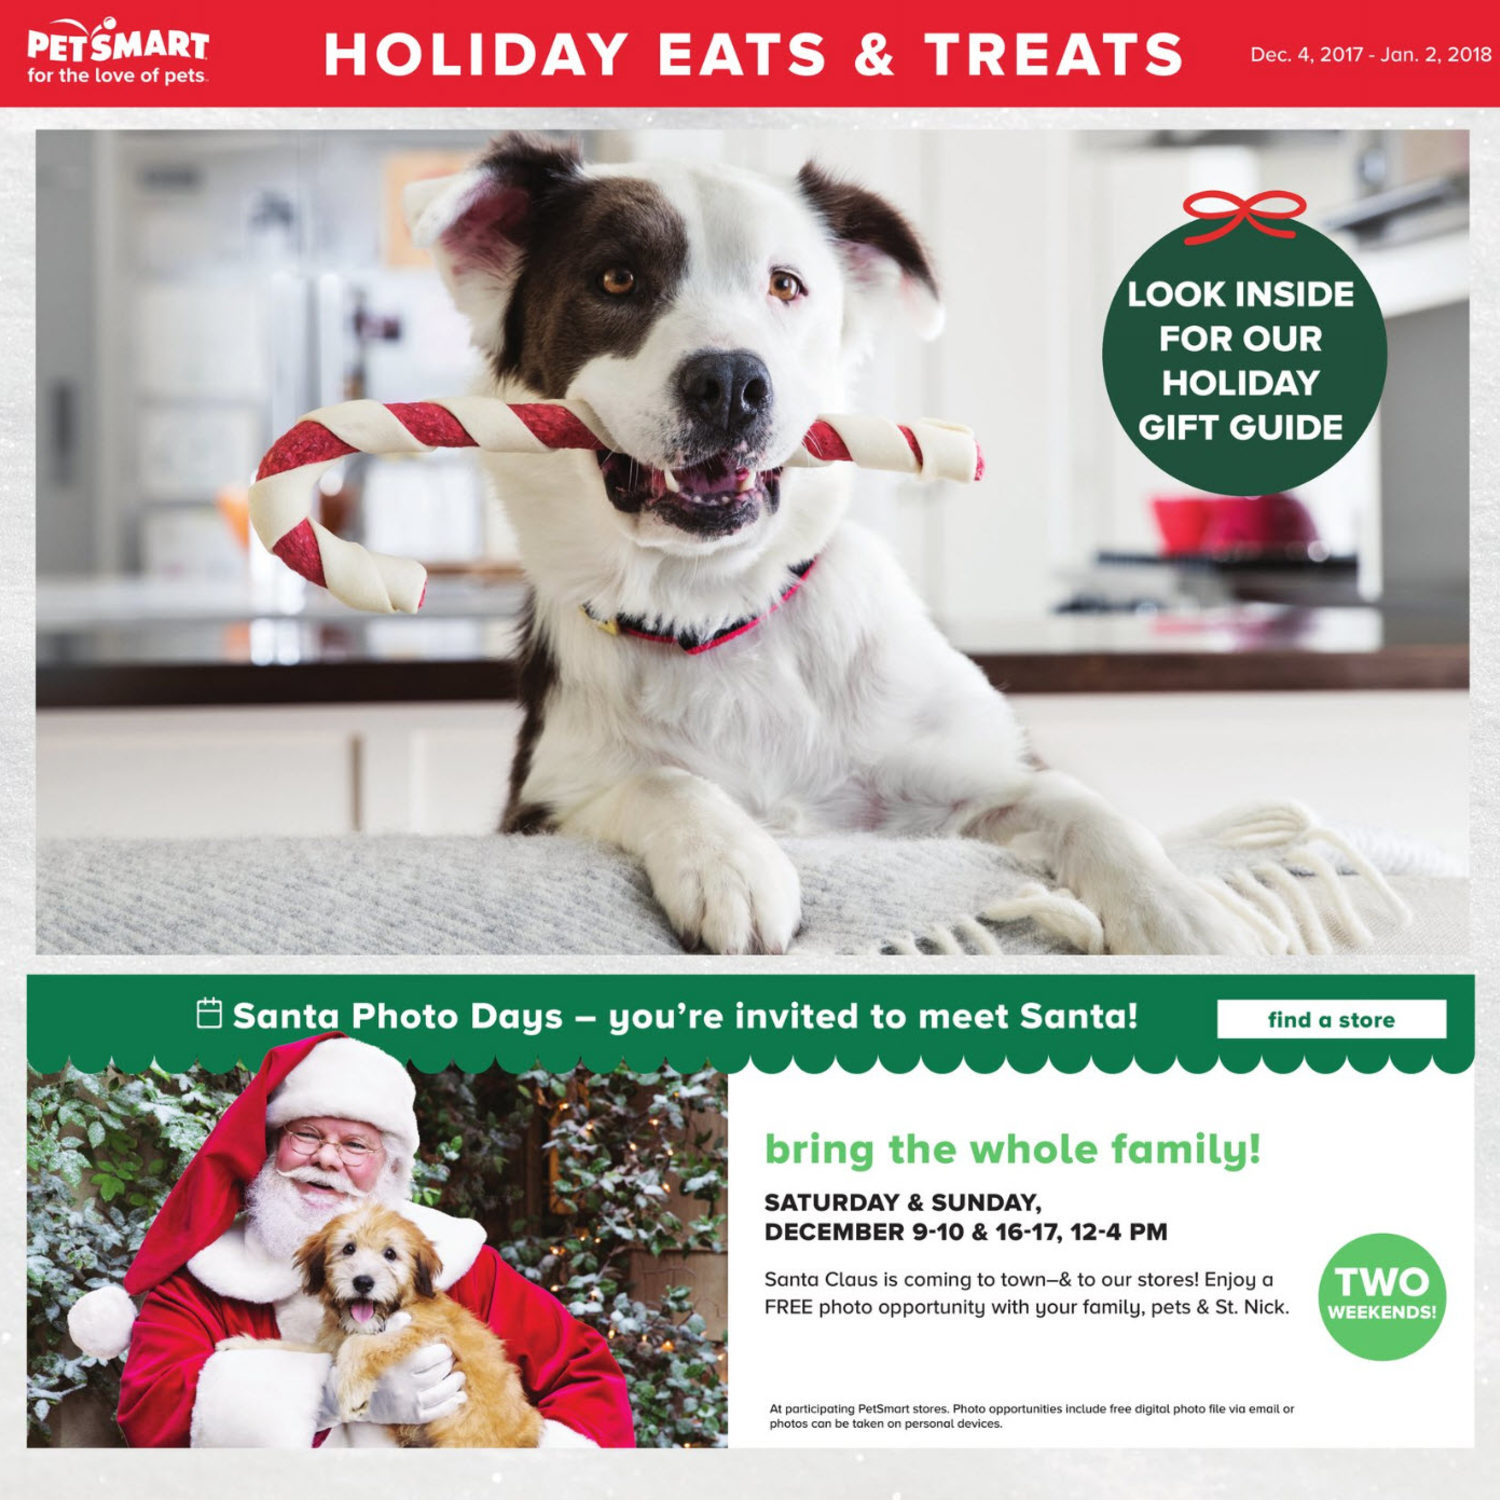 PetSmart Weekly Flyer - Holiday Eats & Treats - Dec 4 – Jan 2 ...